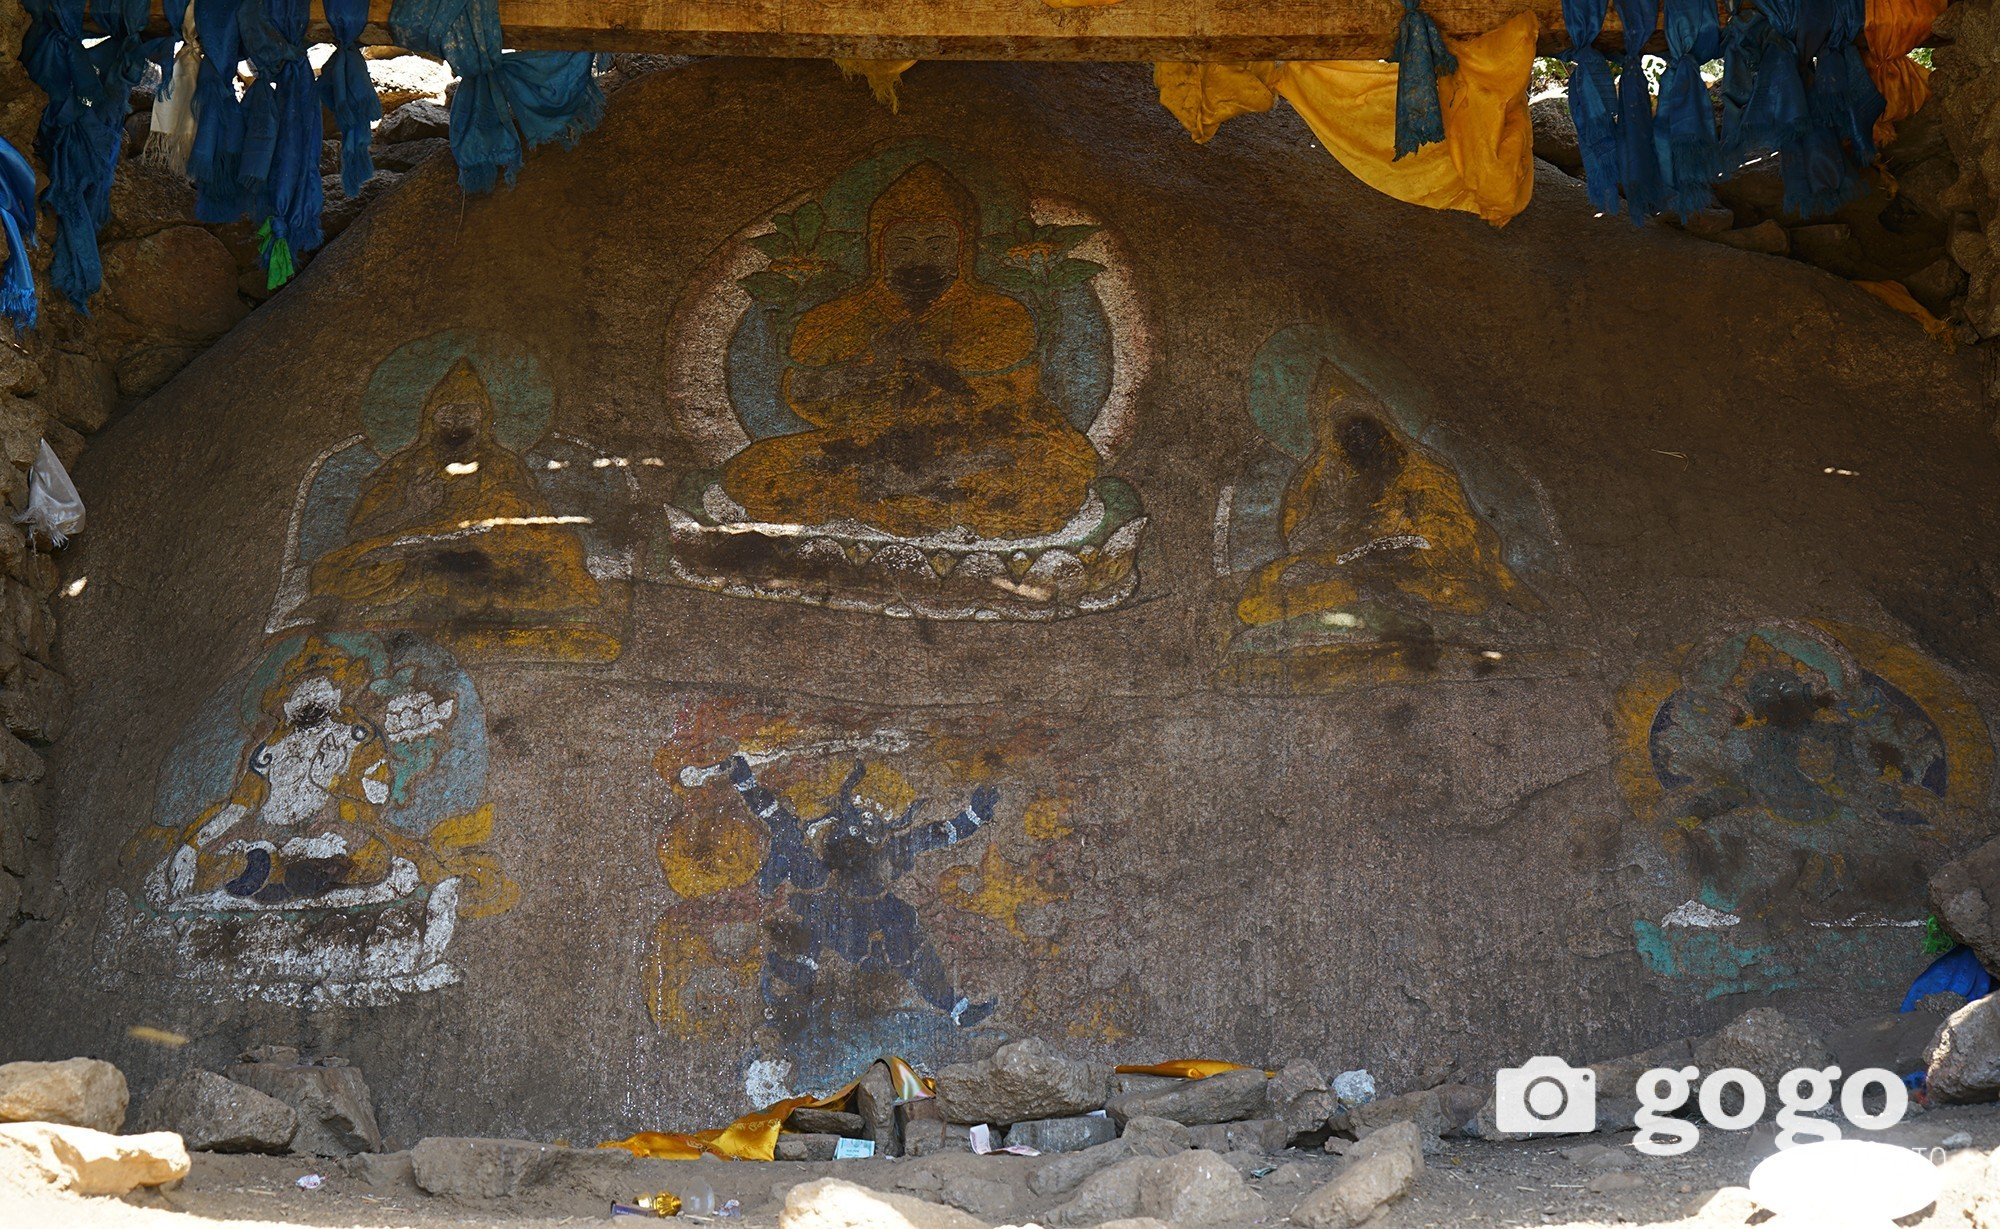 Buddhist deities painted on the rocks